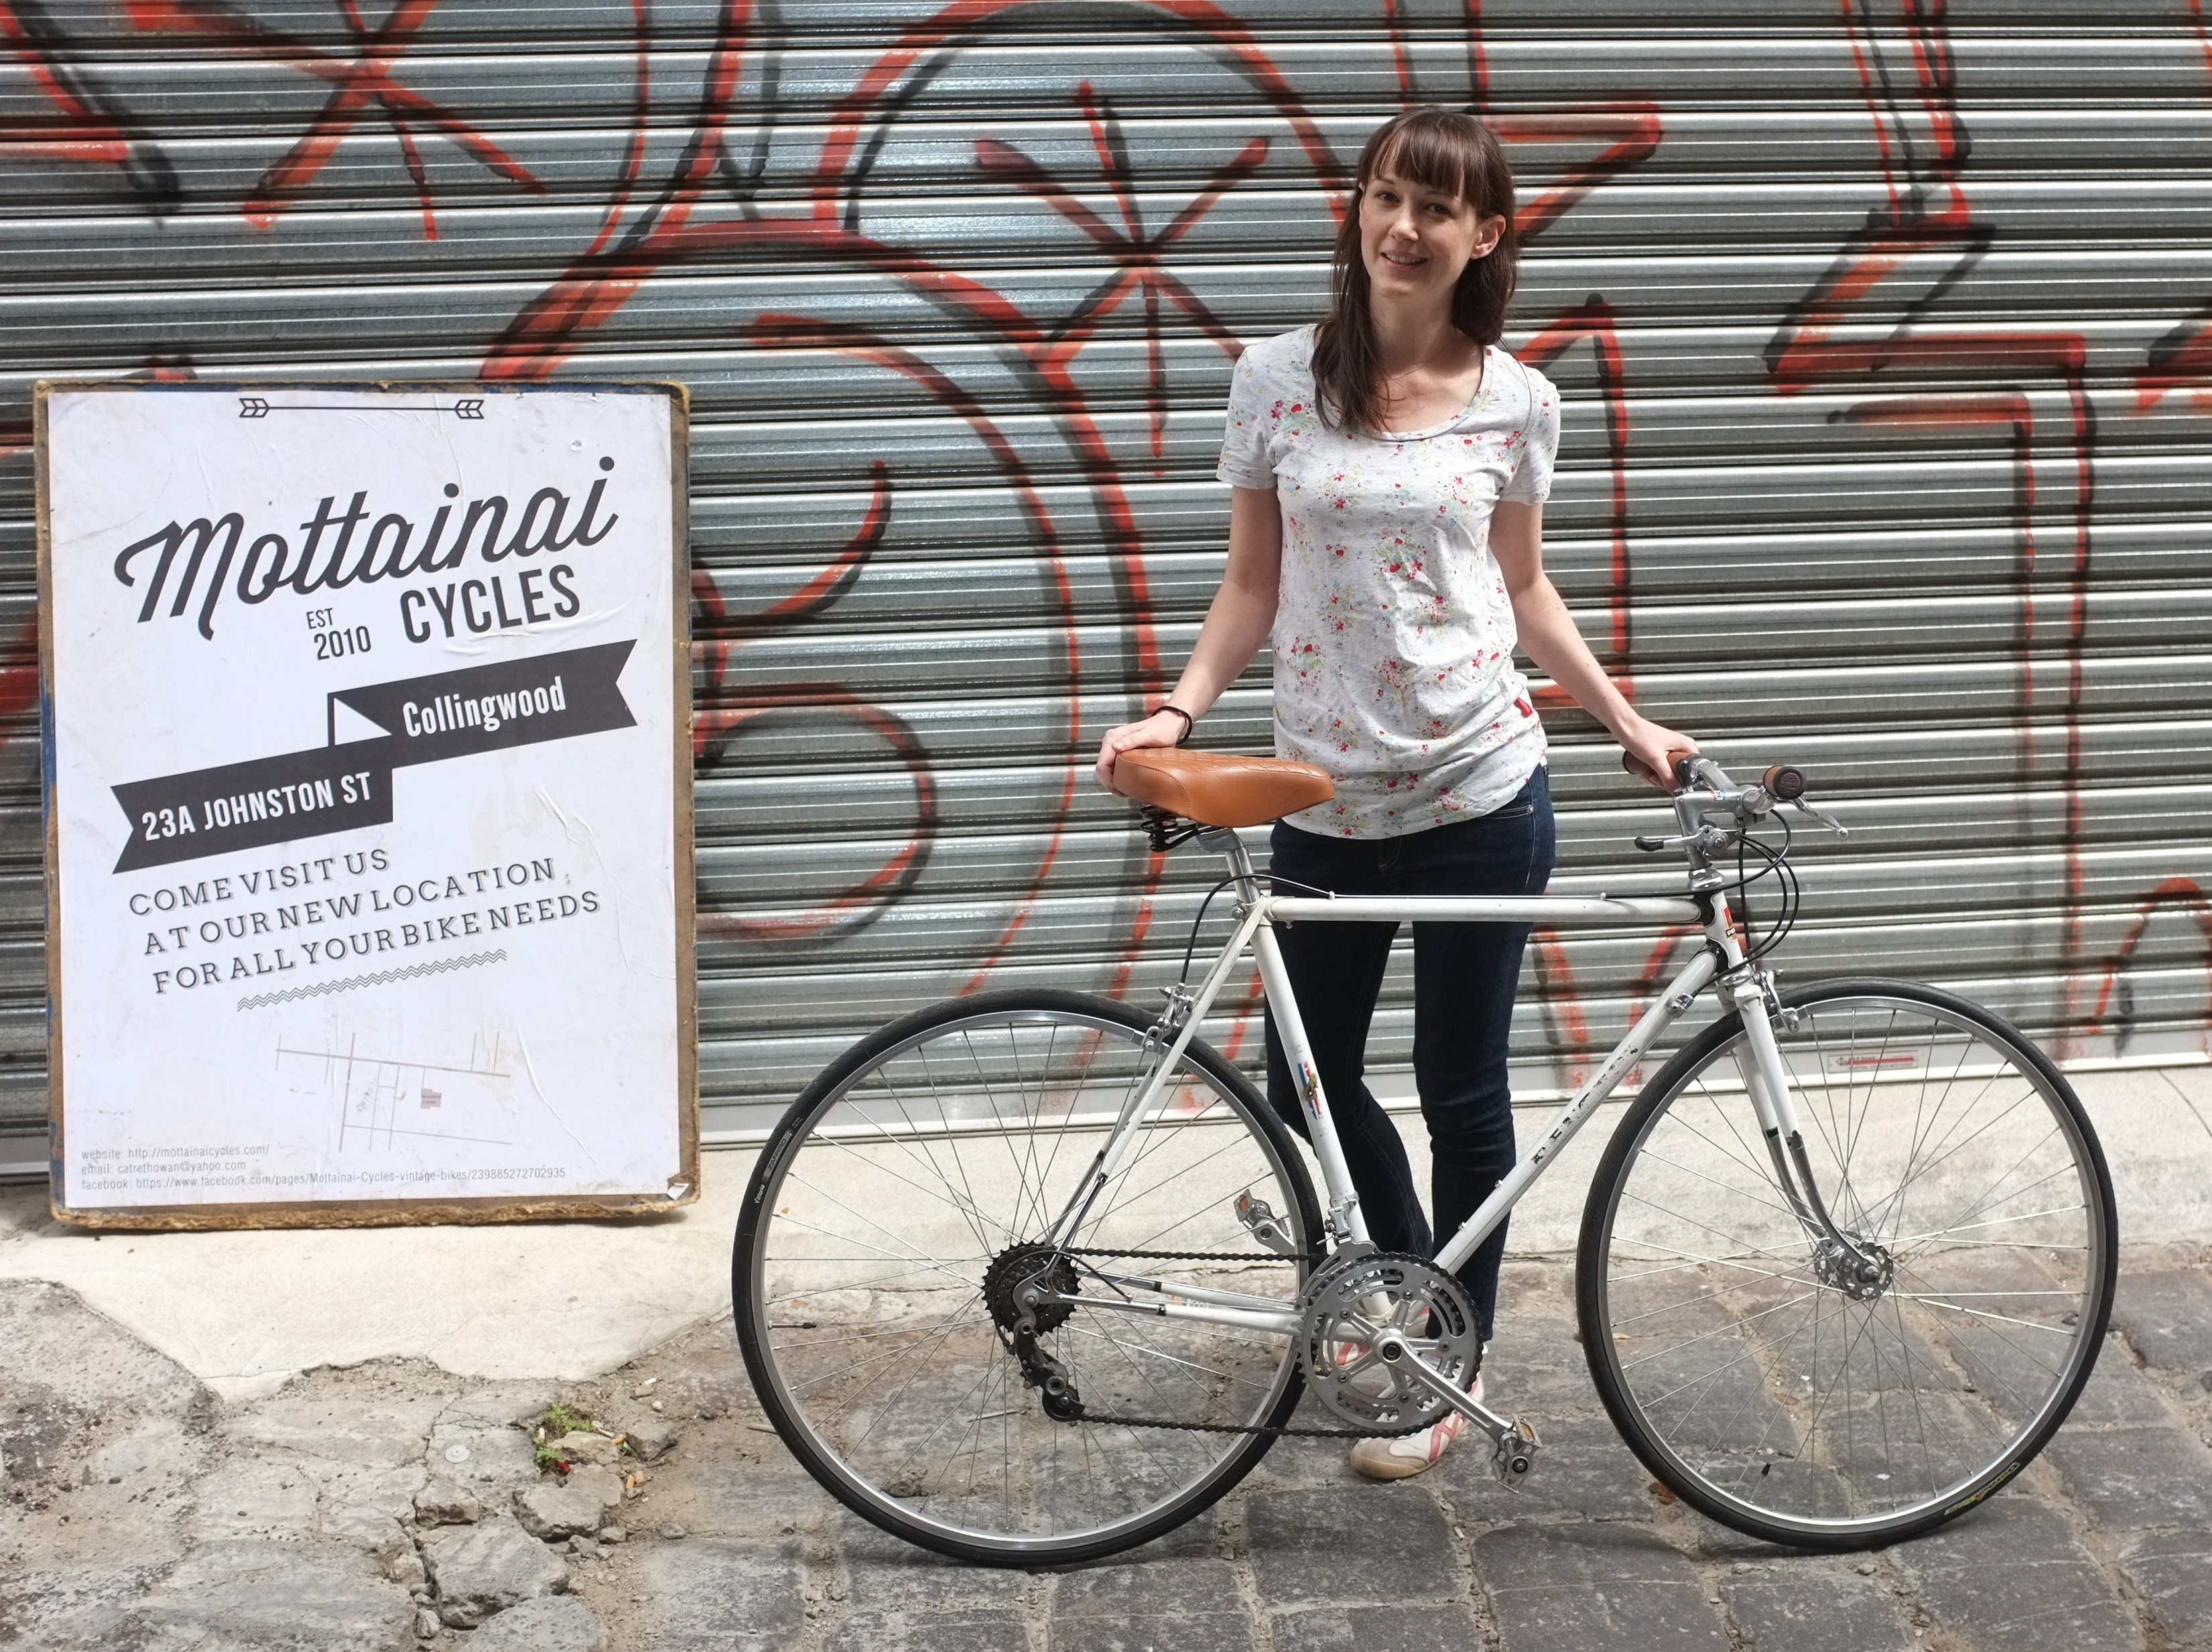 Melbourne vintage bicycle – mottainaicycles.com